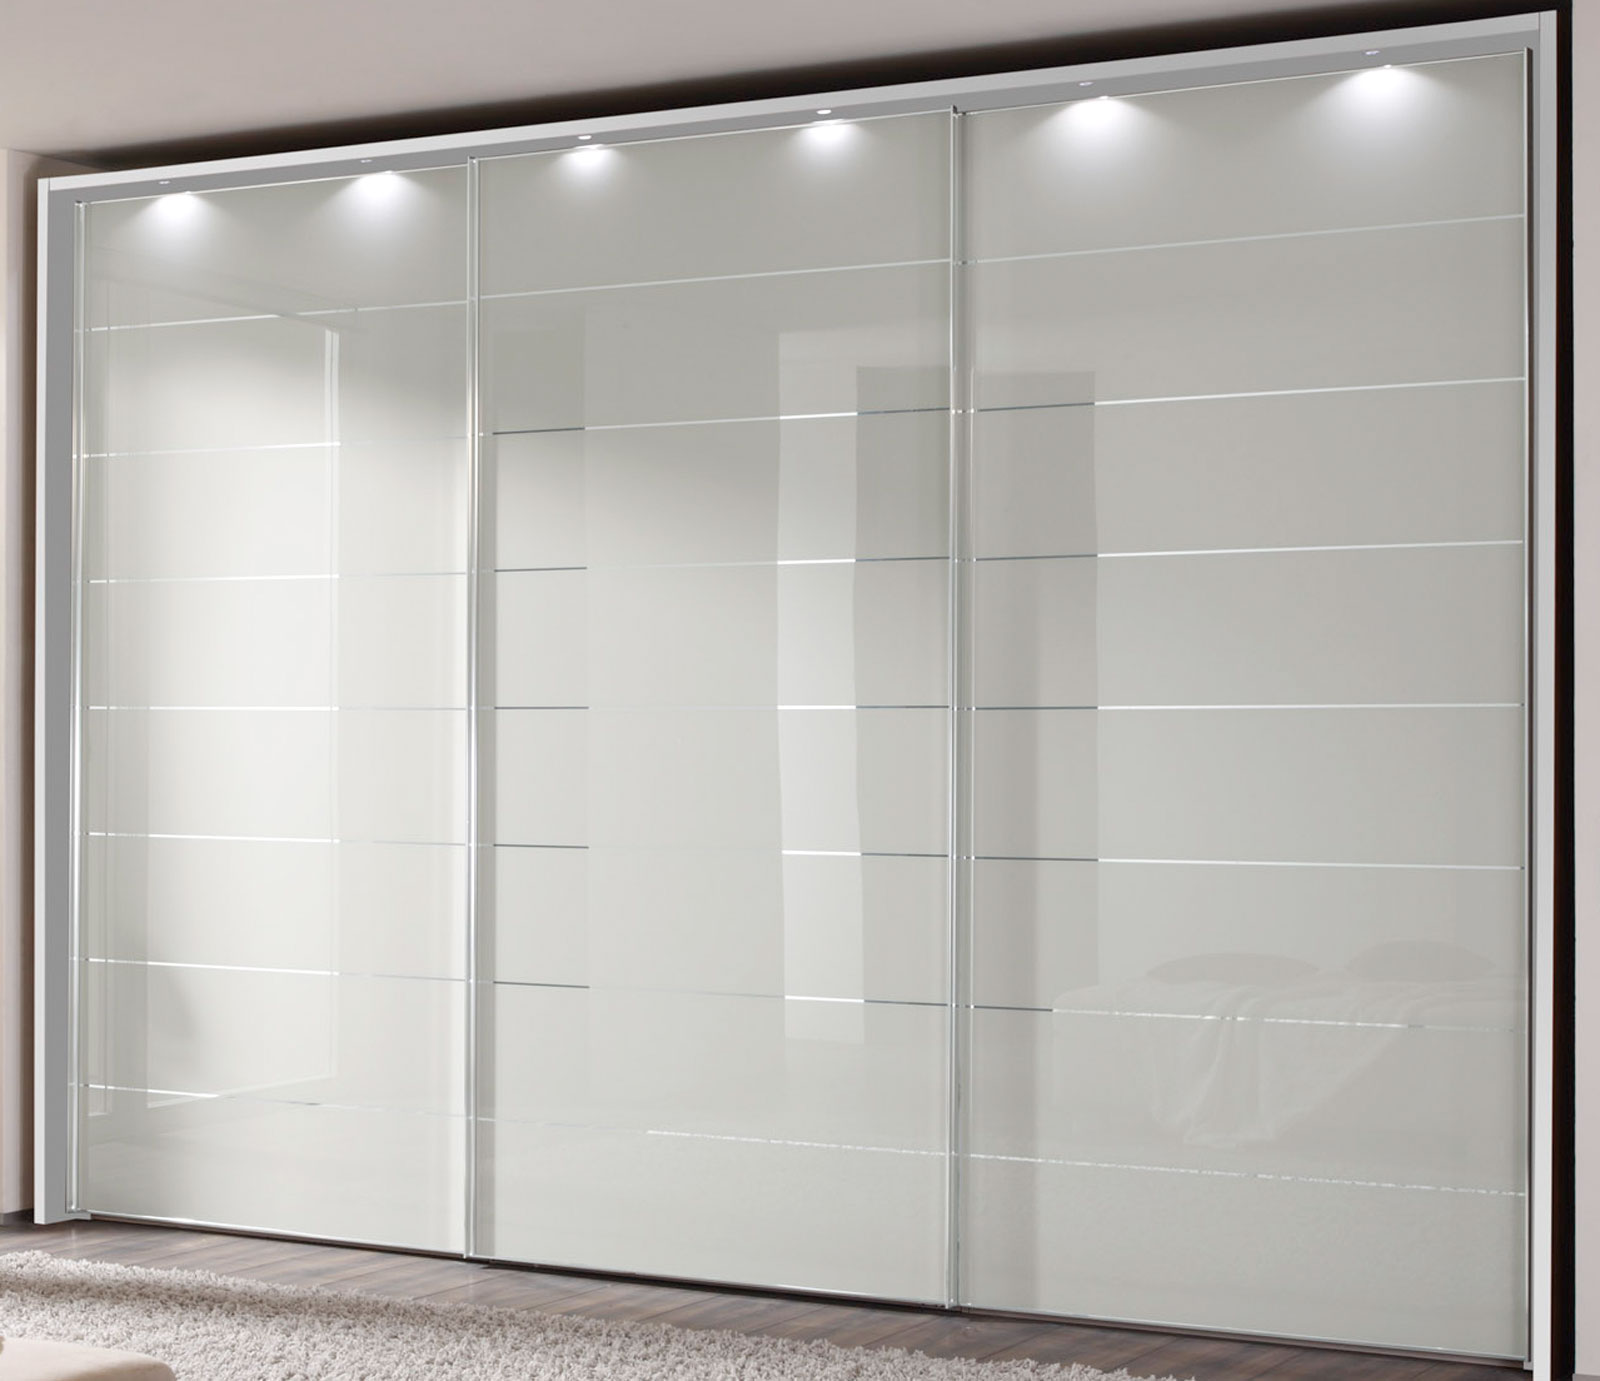 GARANT Collection Kleiderschrank Sonate